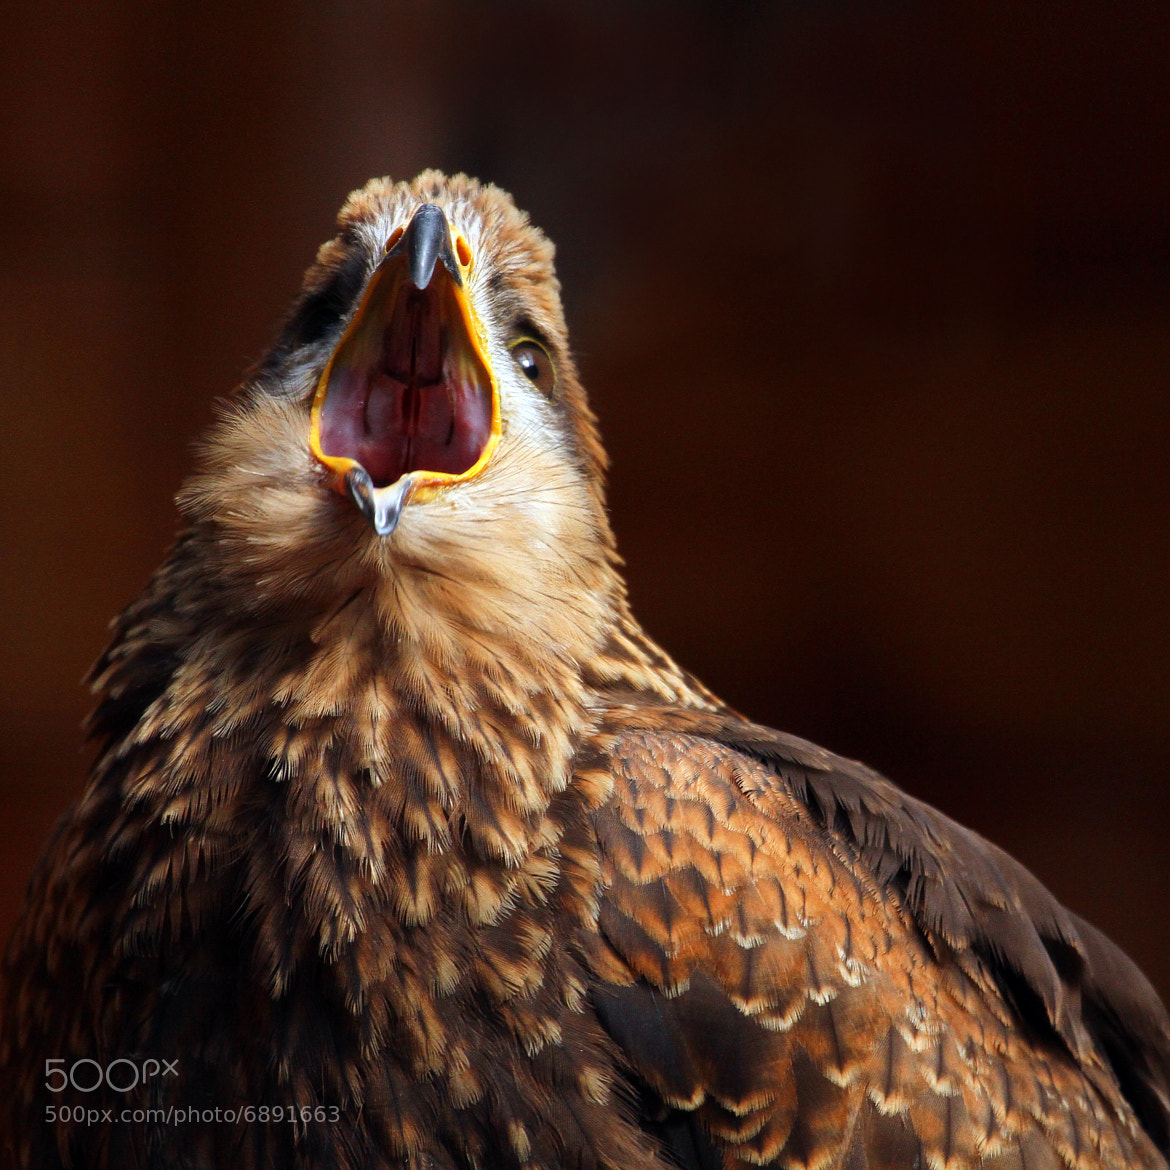 Photograph Black Kite by Alan Hinchliffe on 500px